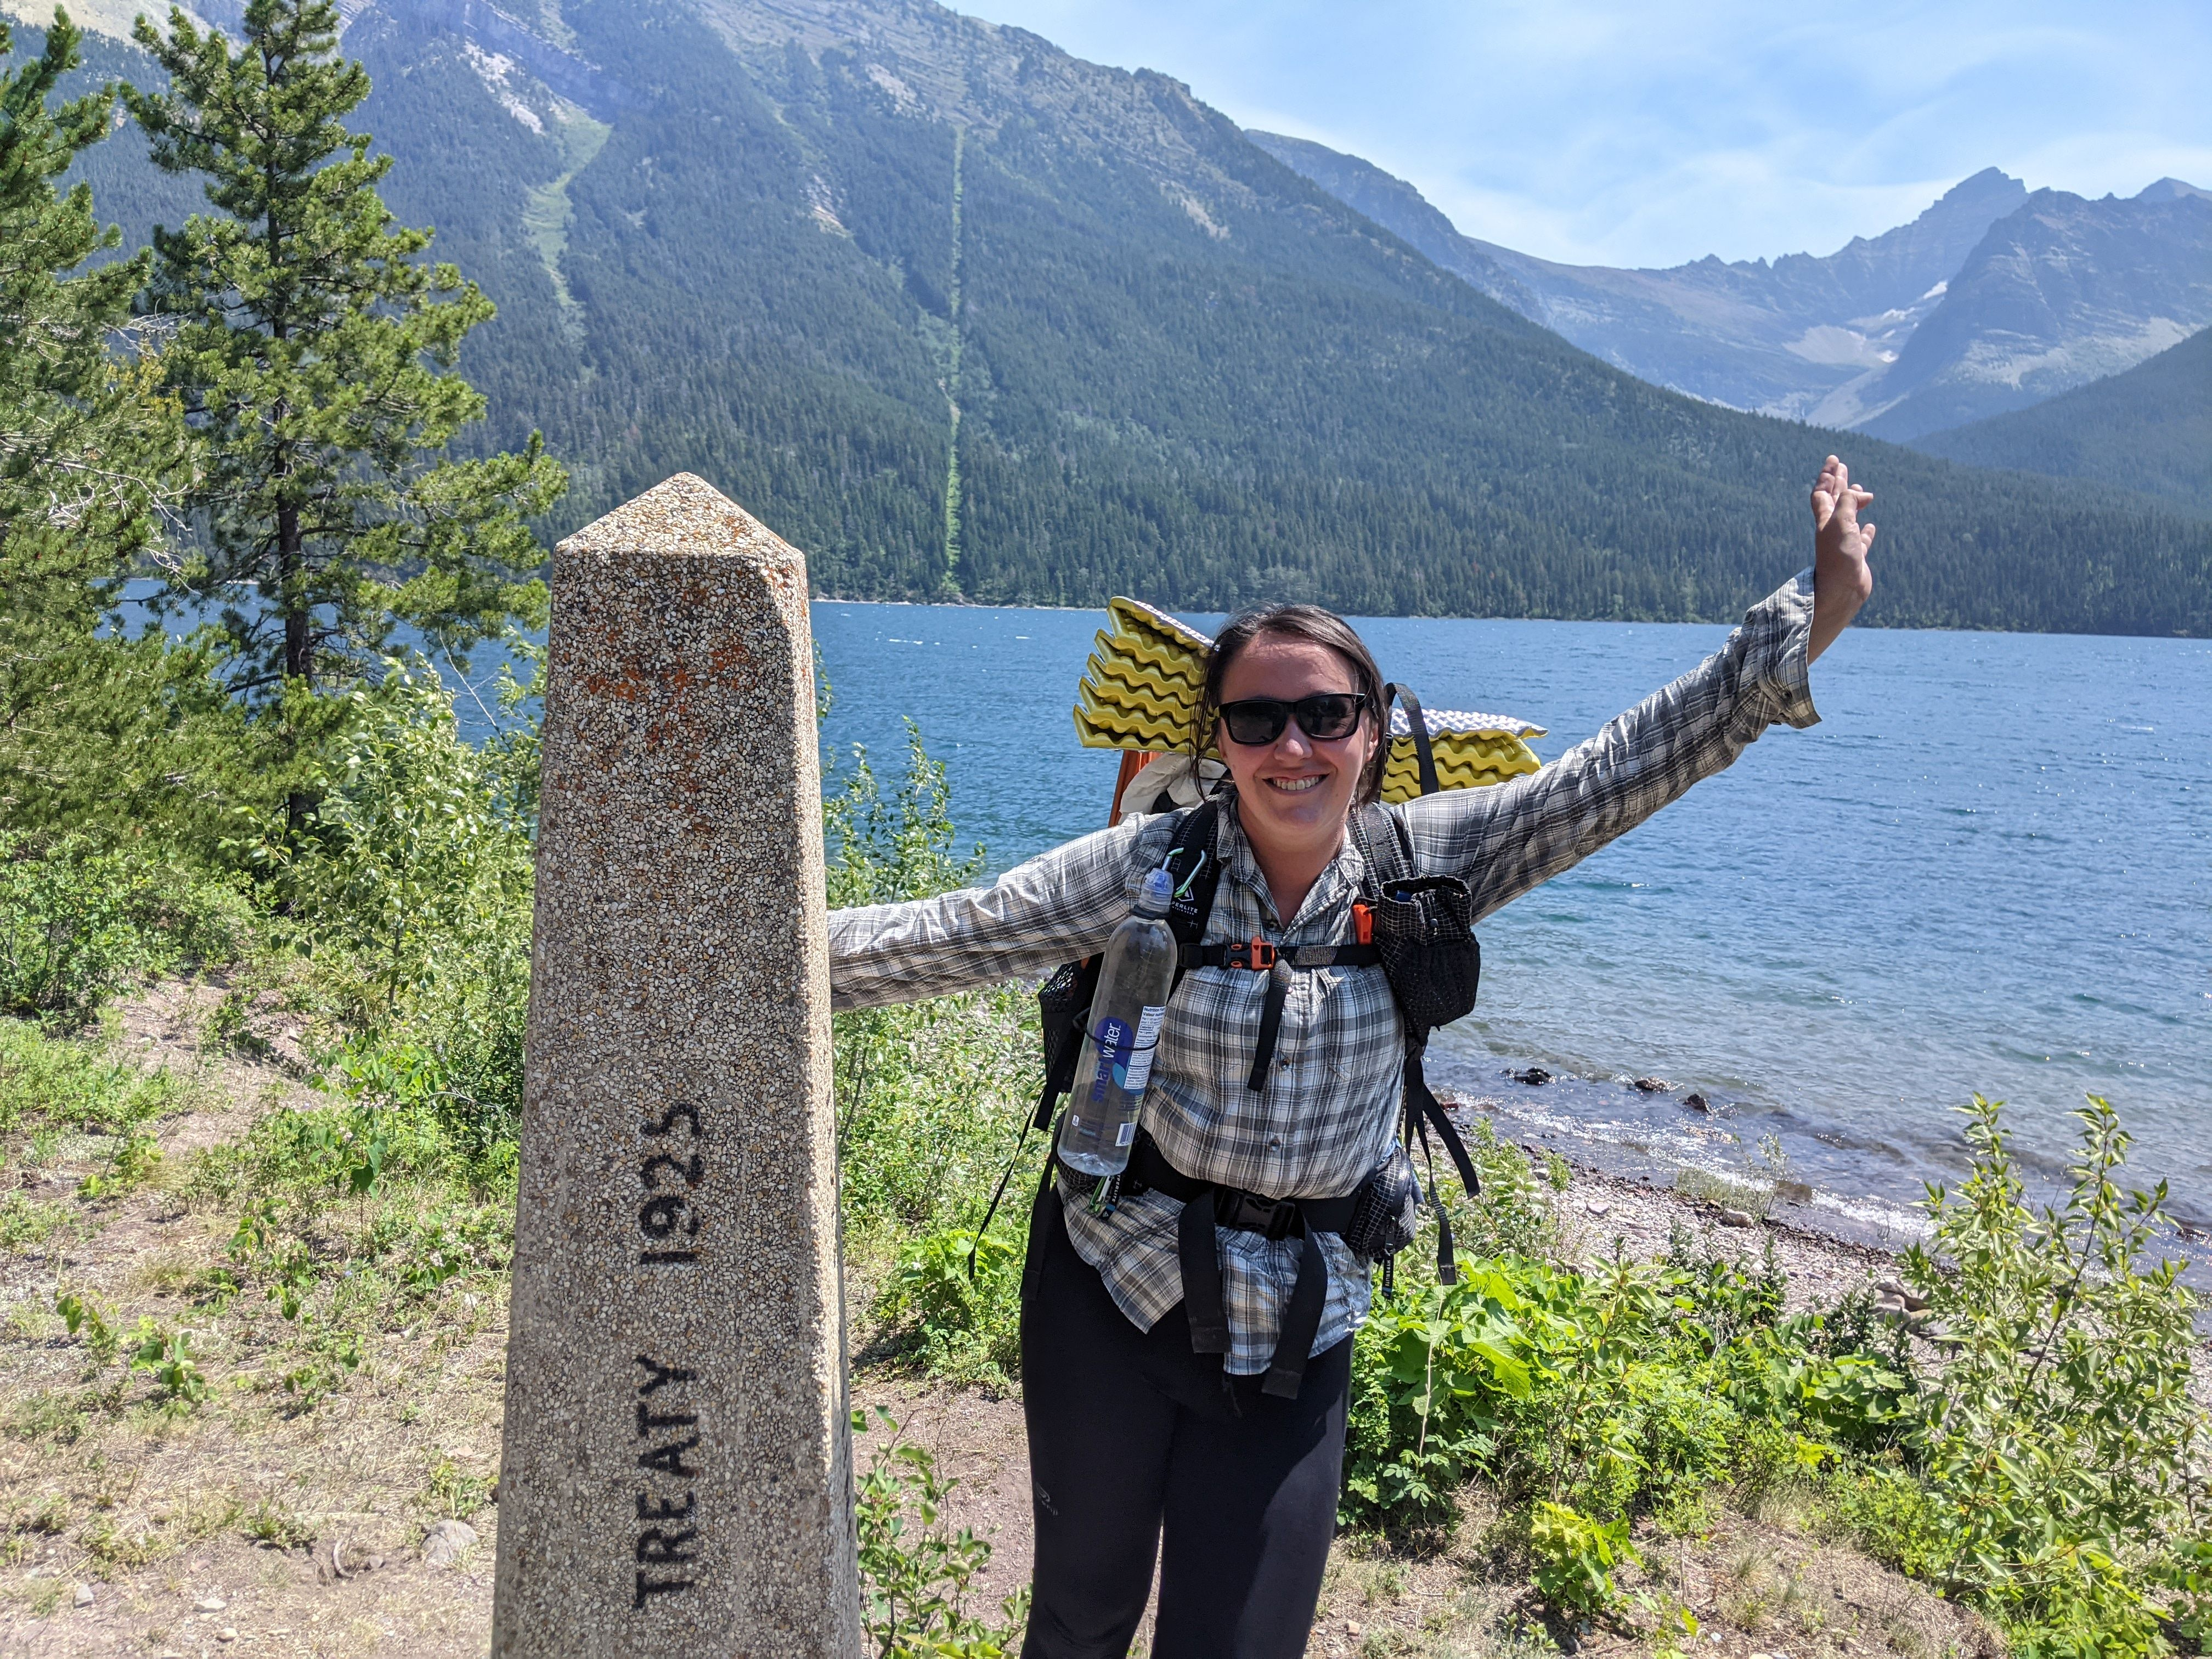 Great Divide Trail Section A: Heat, Hardship and Humility